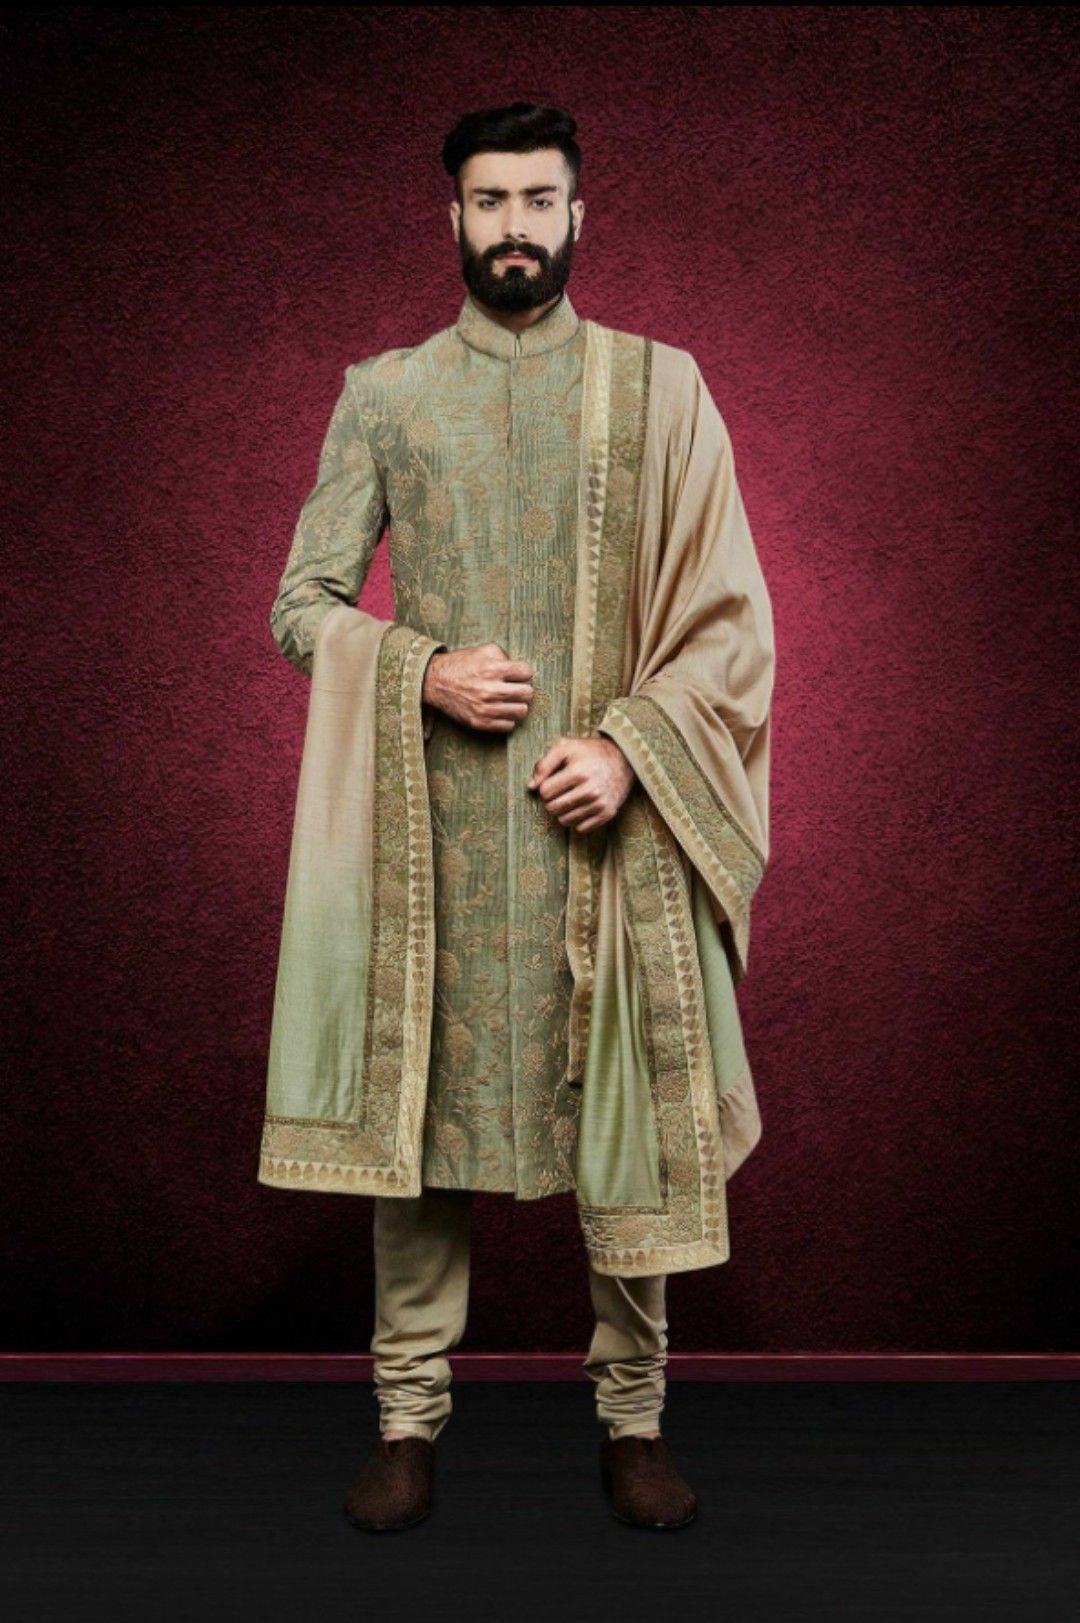 Pin by kunal mohnani on menus outfit ideas pinterest indian